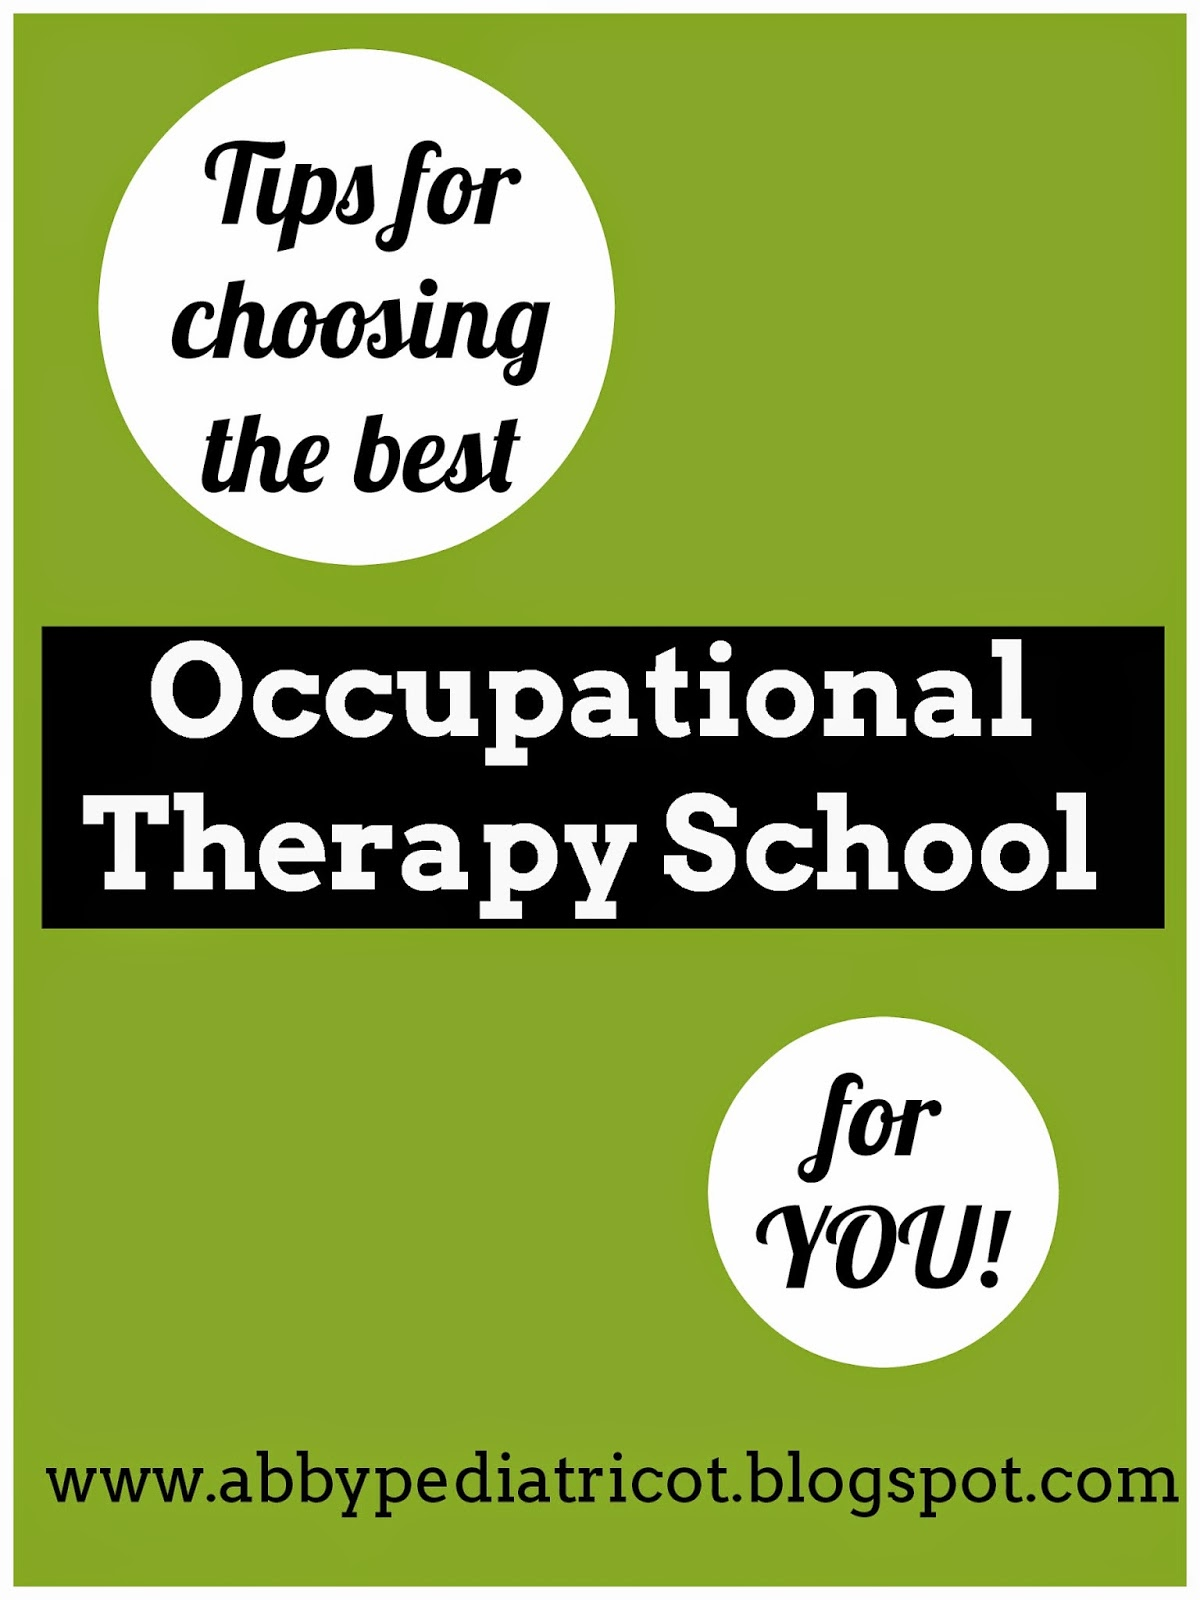 Occupational Therapy Assistant (OTA) essay topics ideas for college